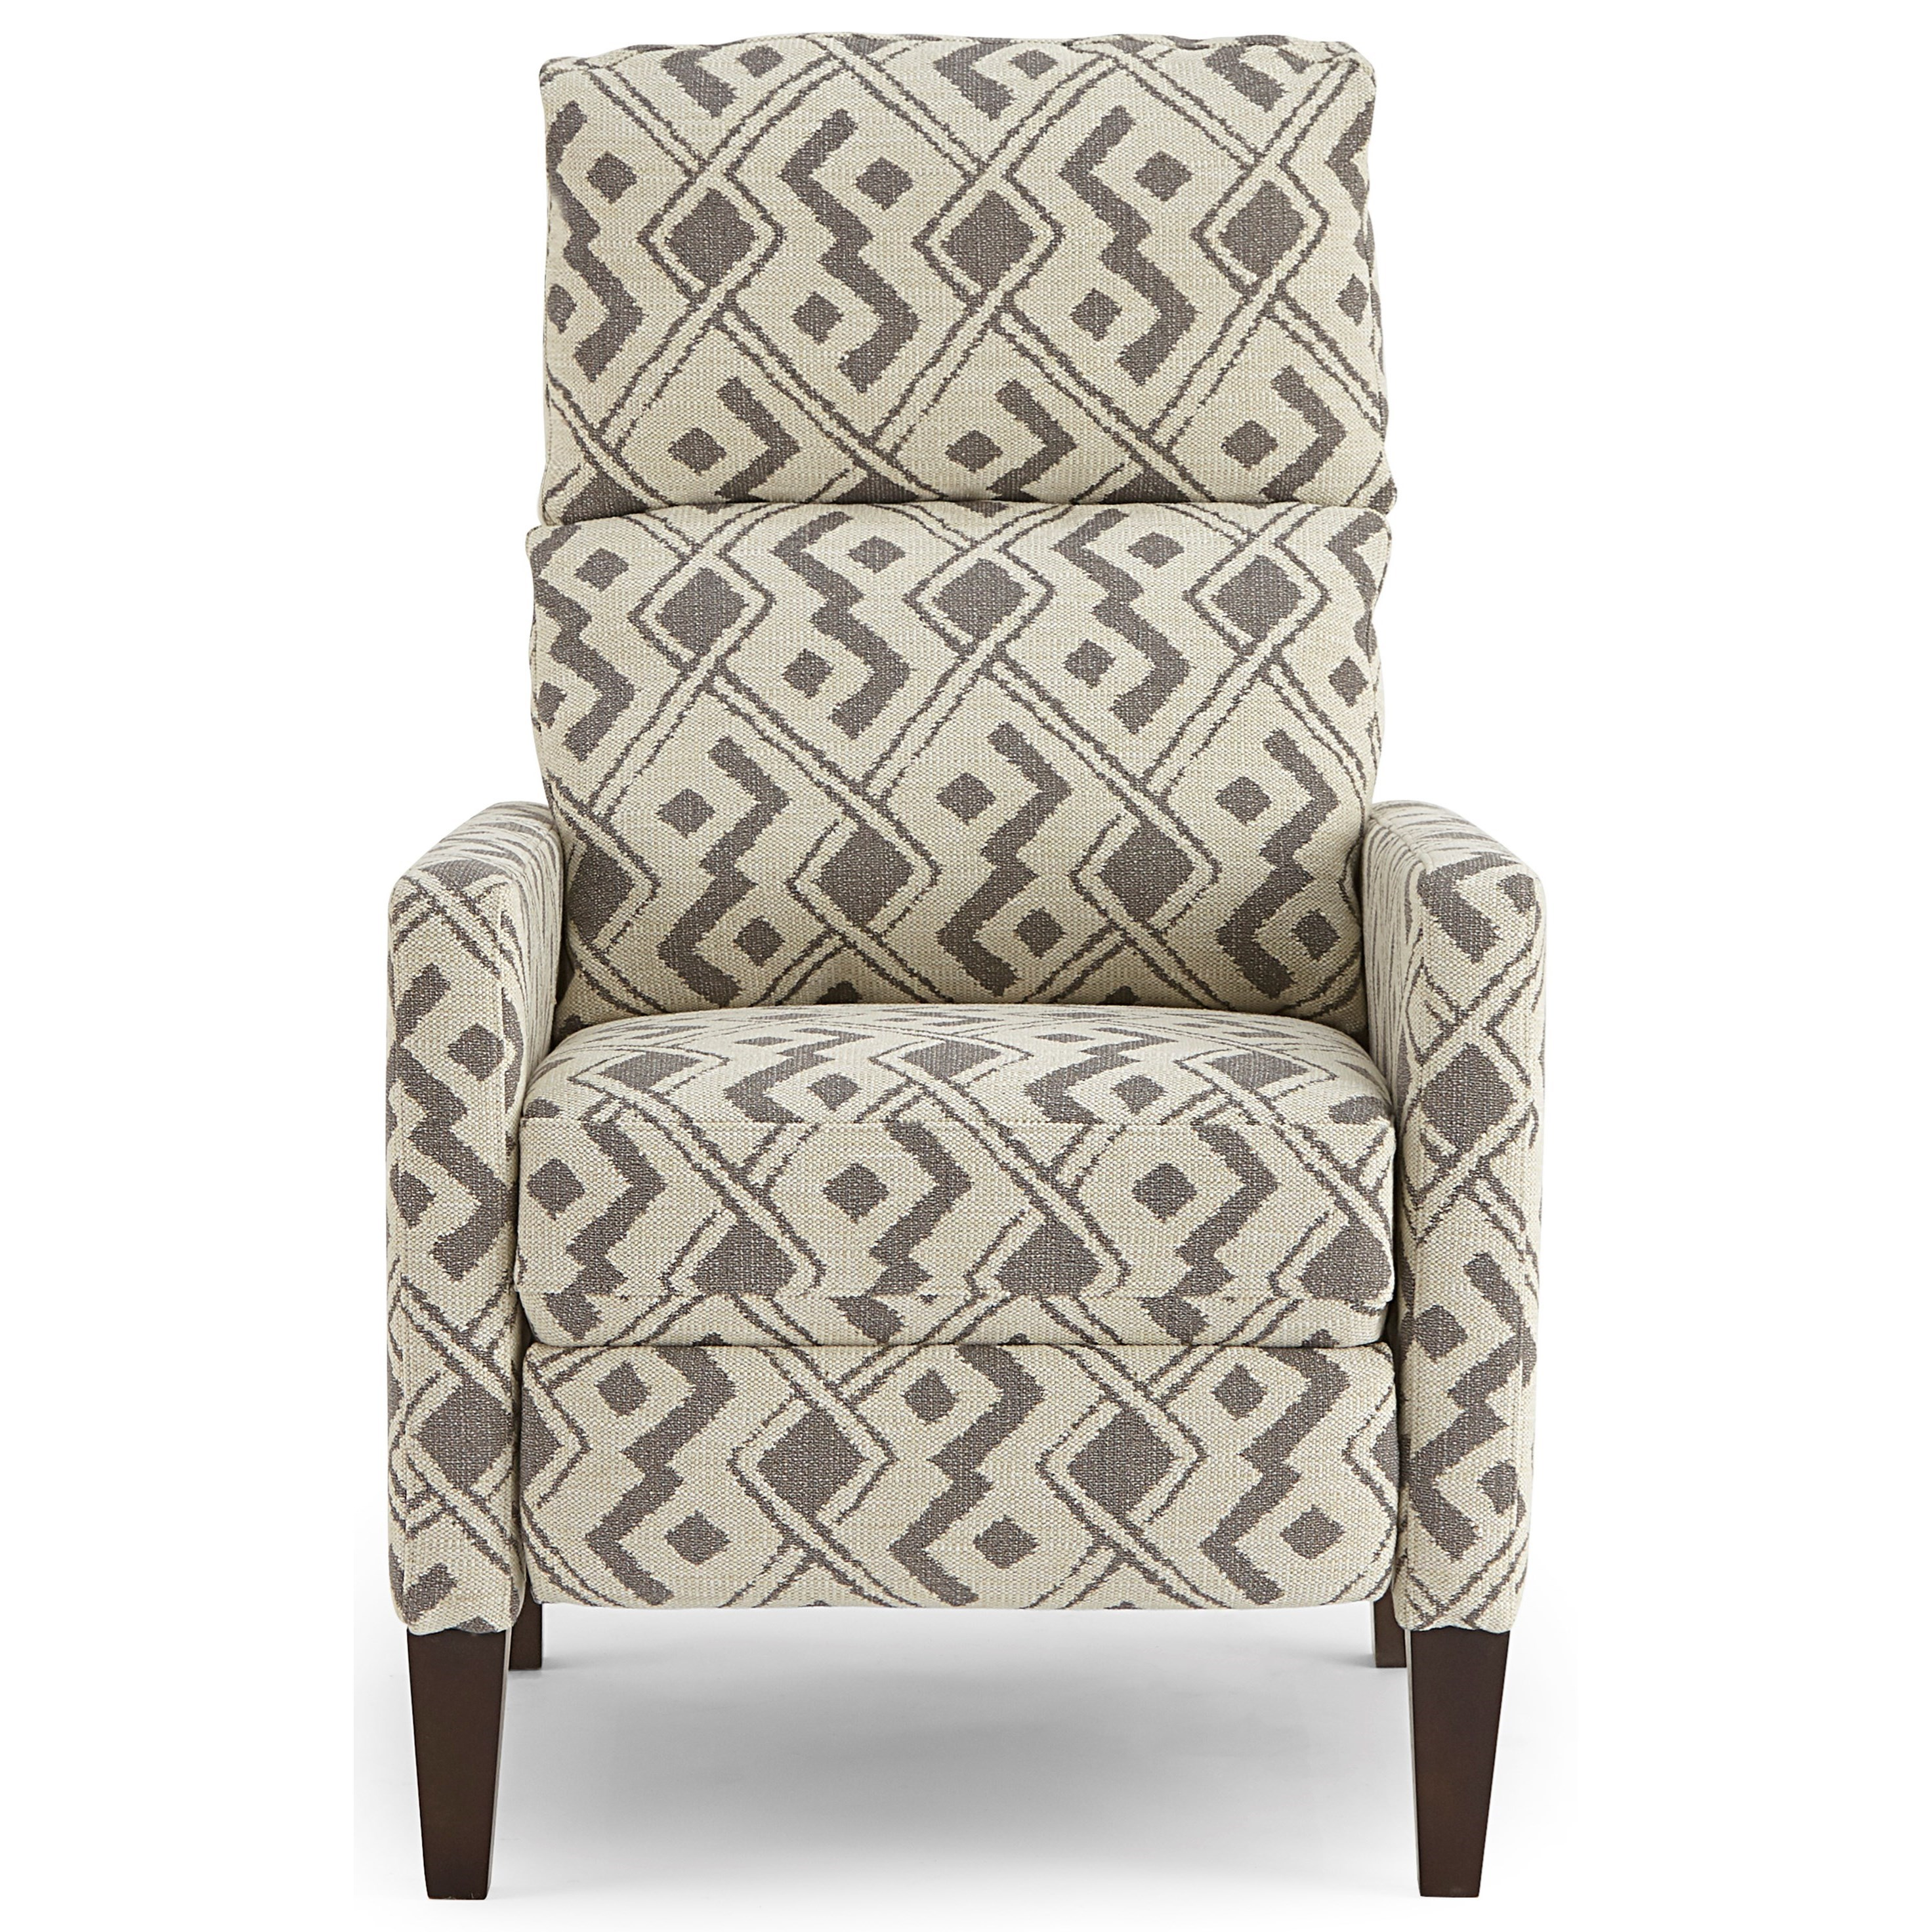 Janae Power Three-Way Recliner by Best Home Furnishings at Baer's Furniture